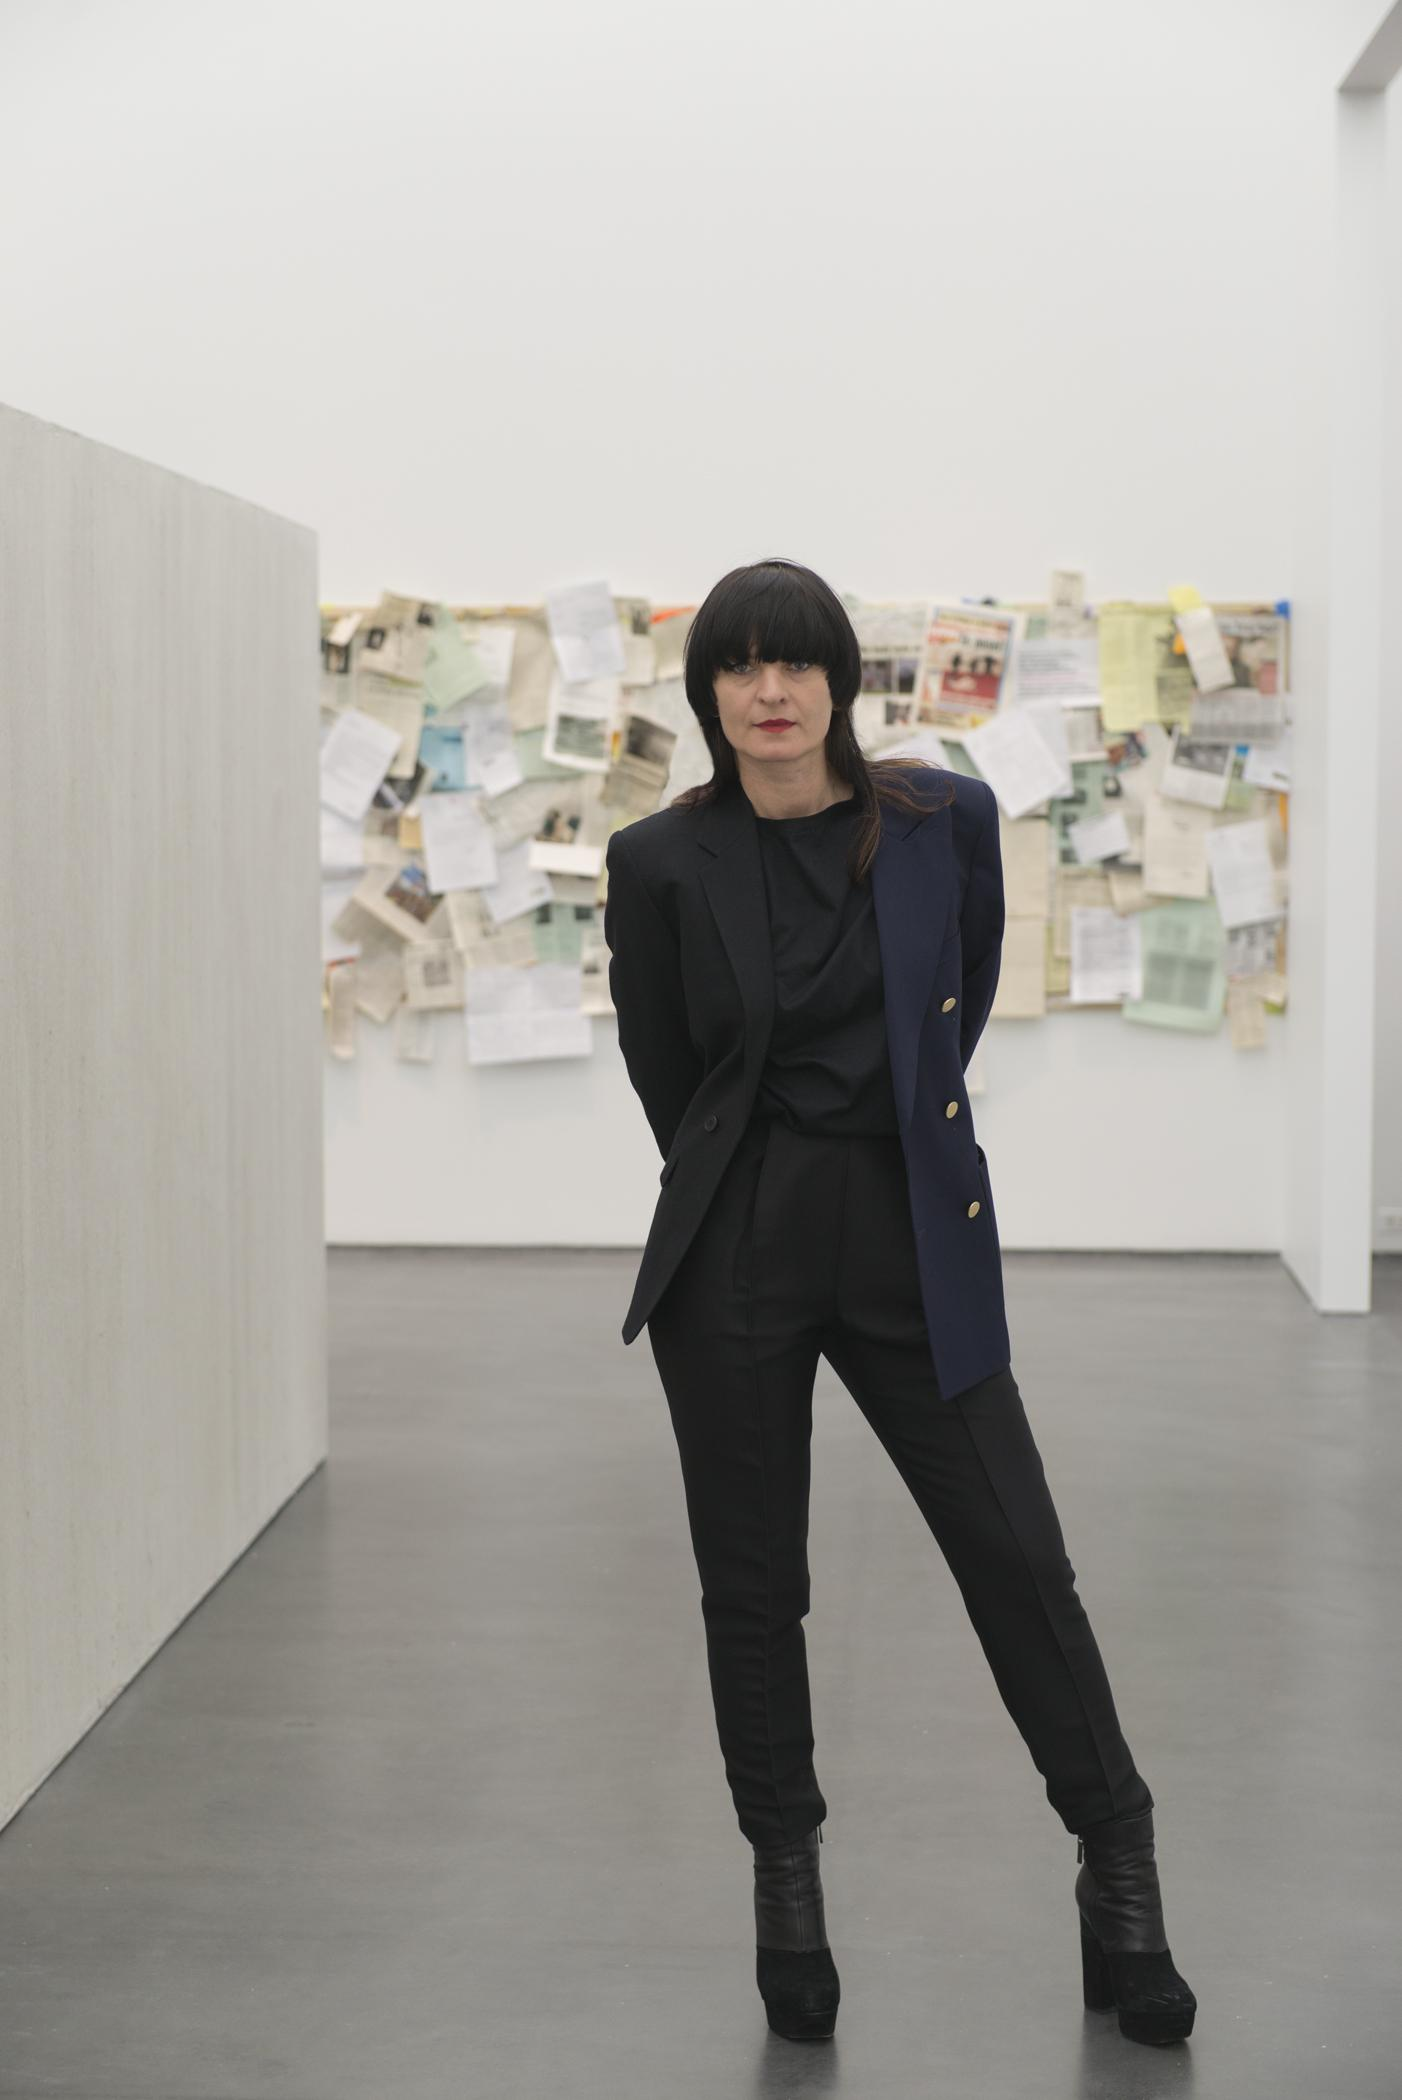 Portrait of a woman with long brown hair, blunt bangs, red lipstick and dressed in black standing in an exhibition at the MCA.